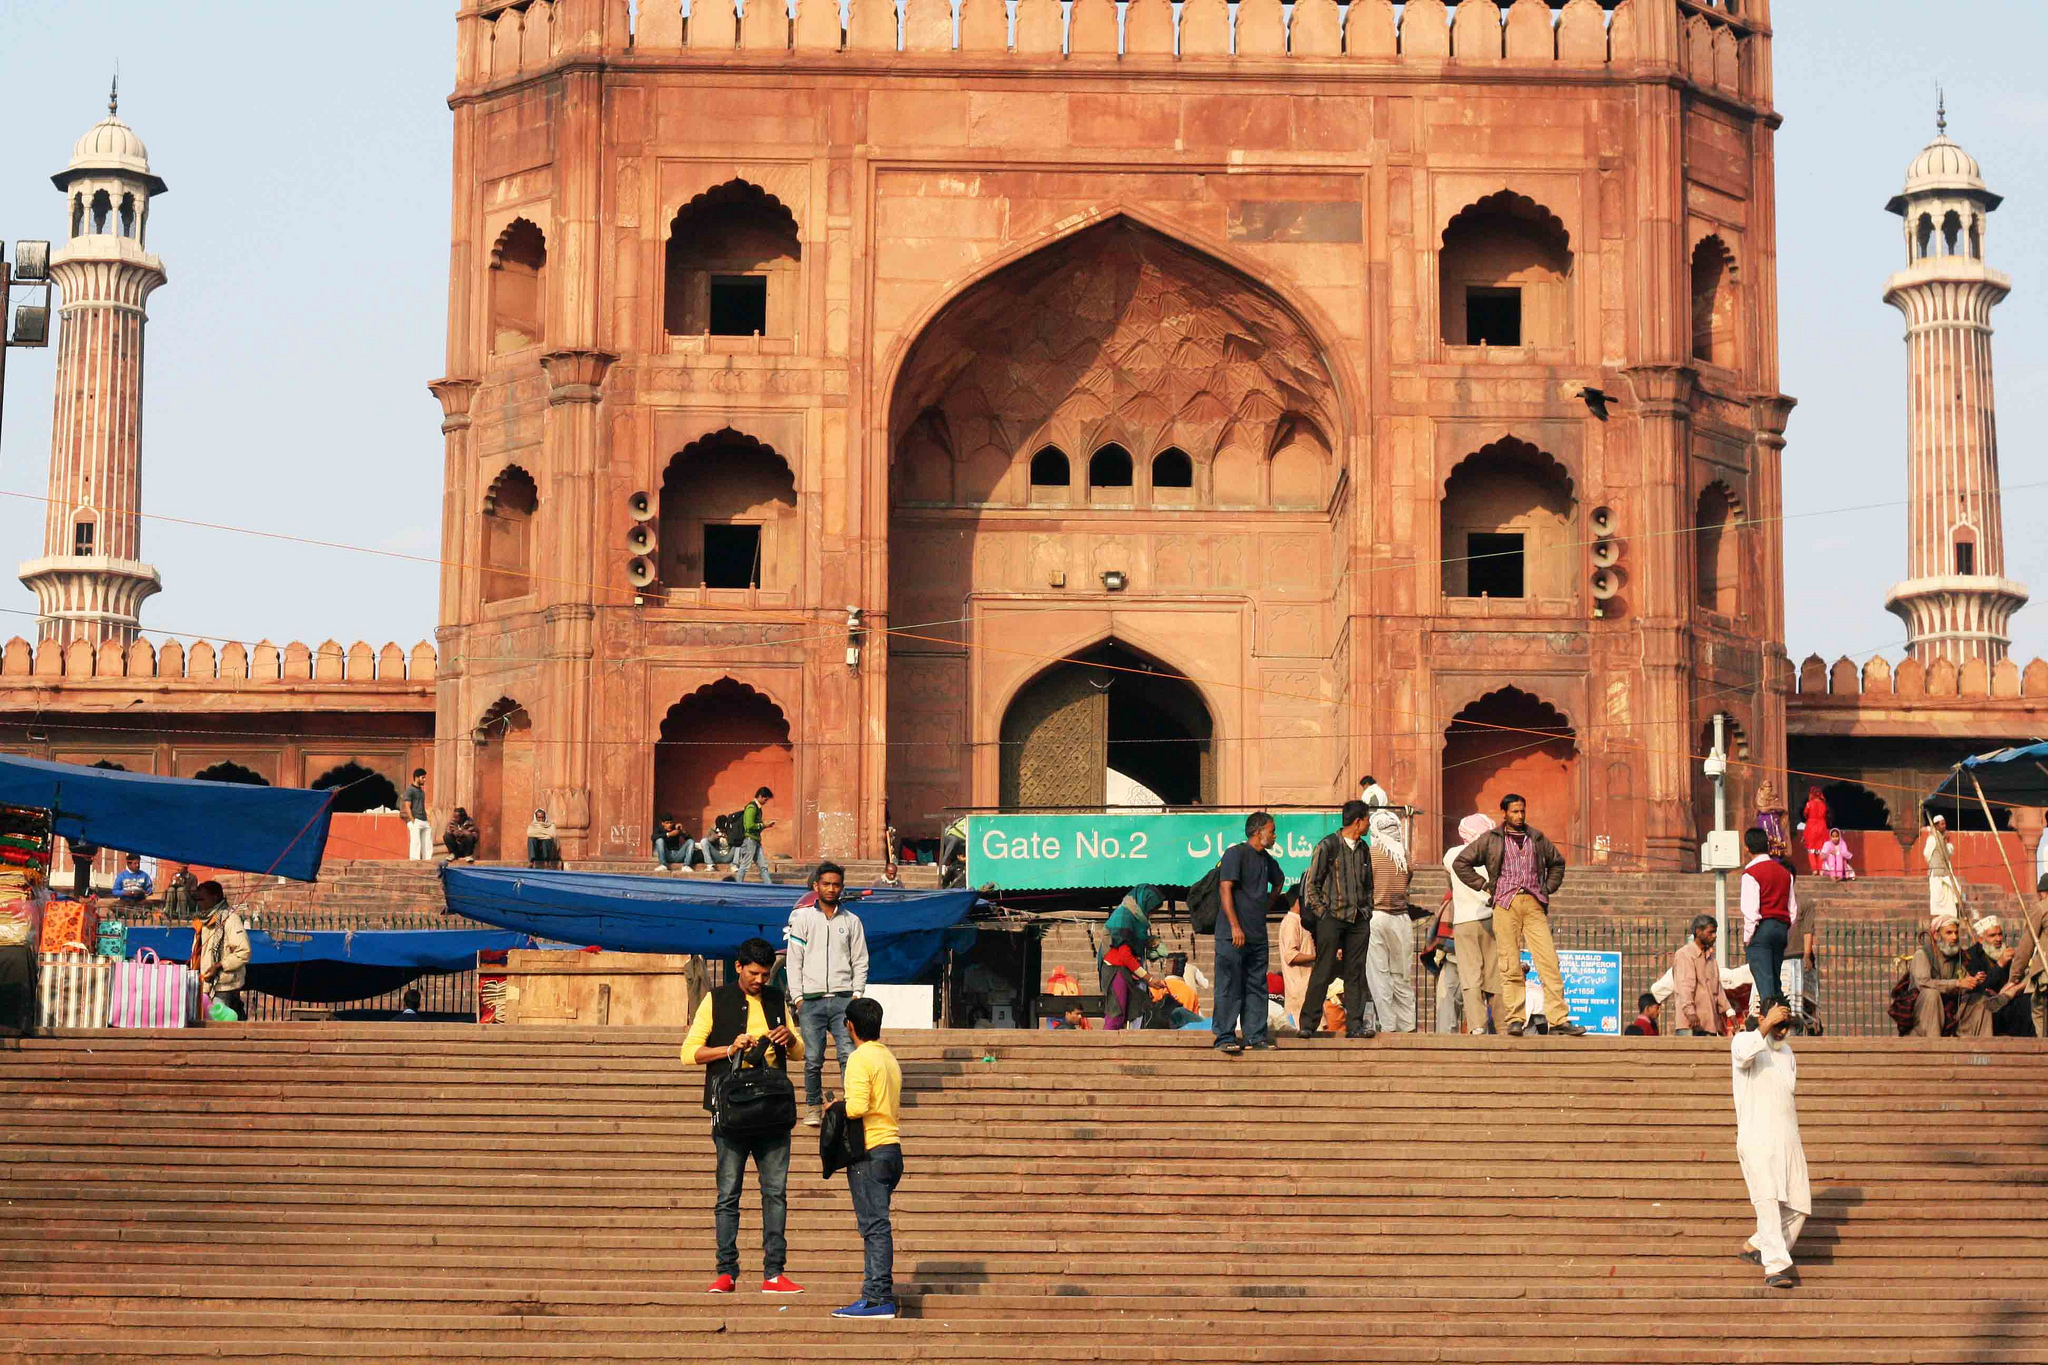 City Series – Crooks, Smackies & Whores, Stones of Jama Masjid V